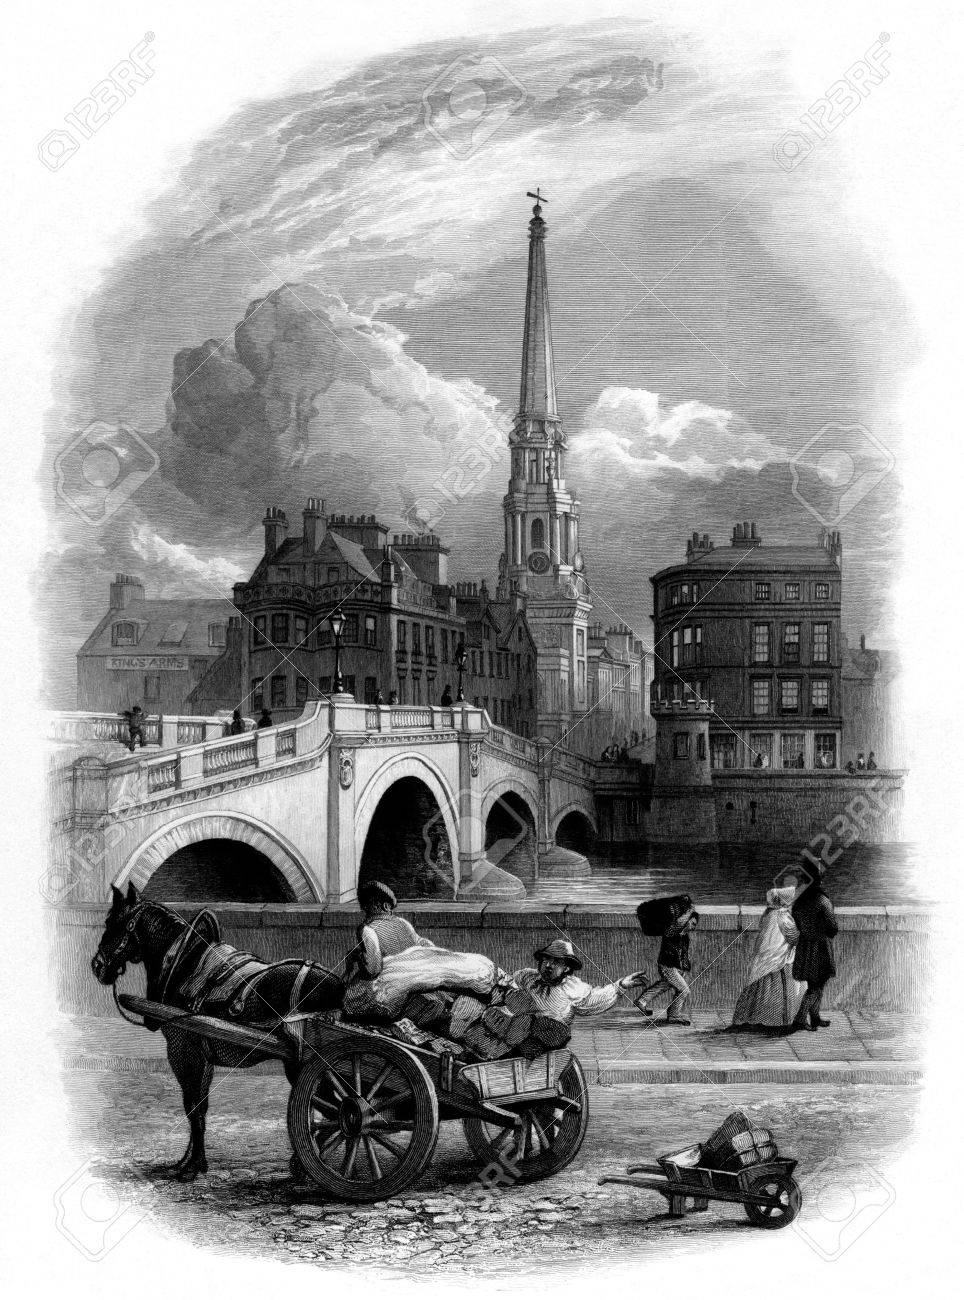 Vignette engraving of Ayr town, Scotland. Engraved by William Miller after John Faed, published in Tam O'Shanter, 1855. Public domain image by virtue of age. Stock Photo - 7517518